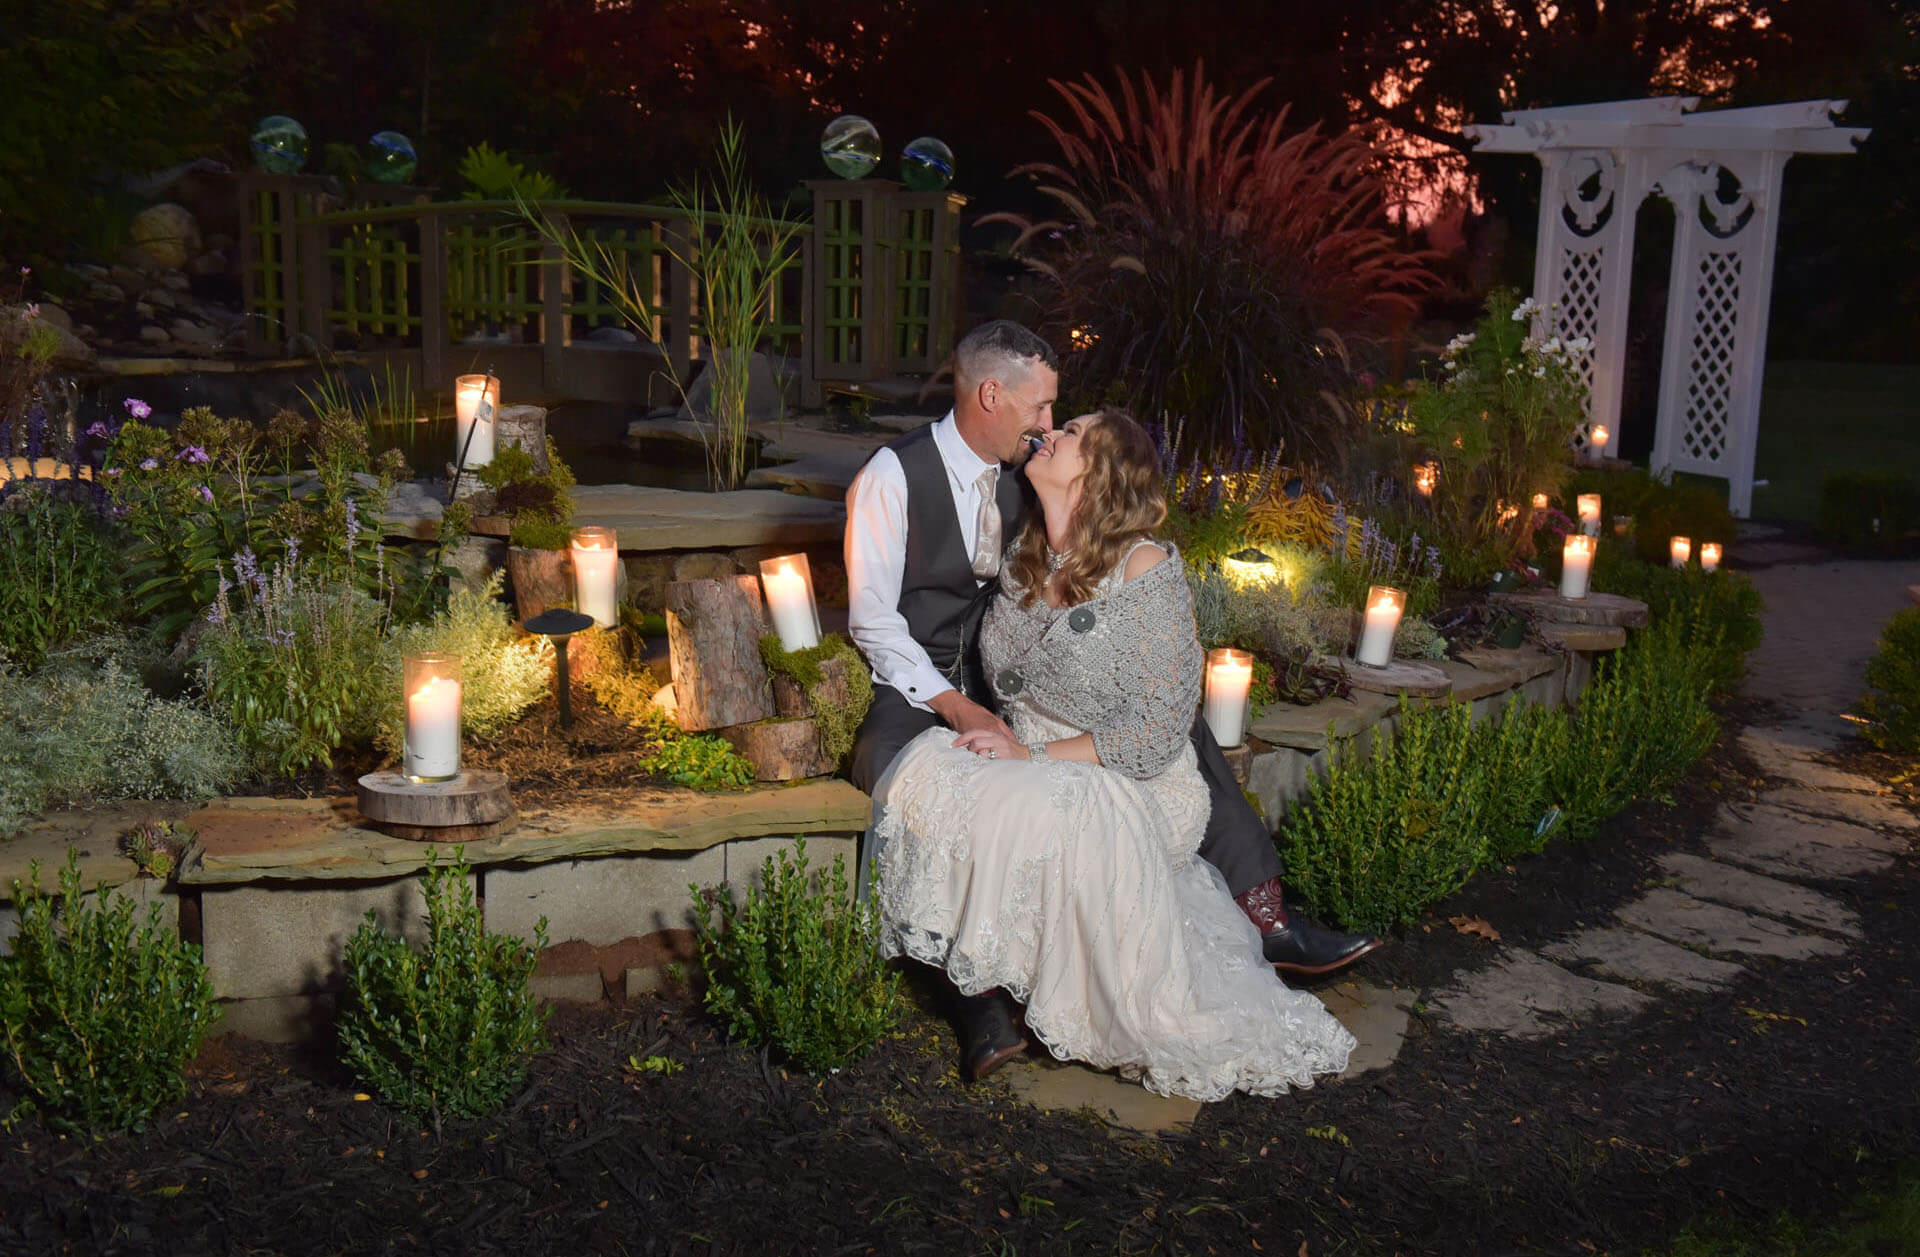 The bride and groom snuggle at the end of their backyard wedding after sunset near Metro Detroit, Michigan.